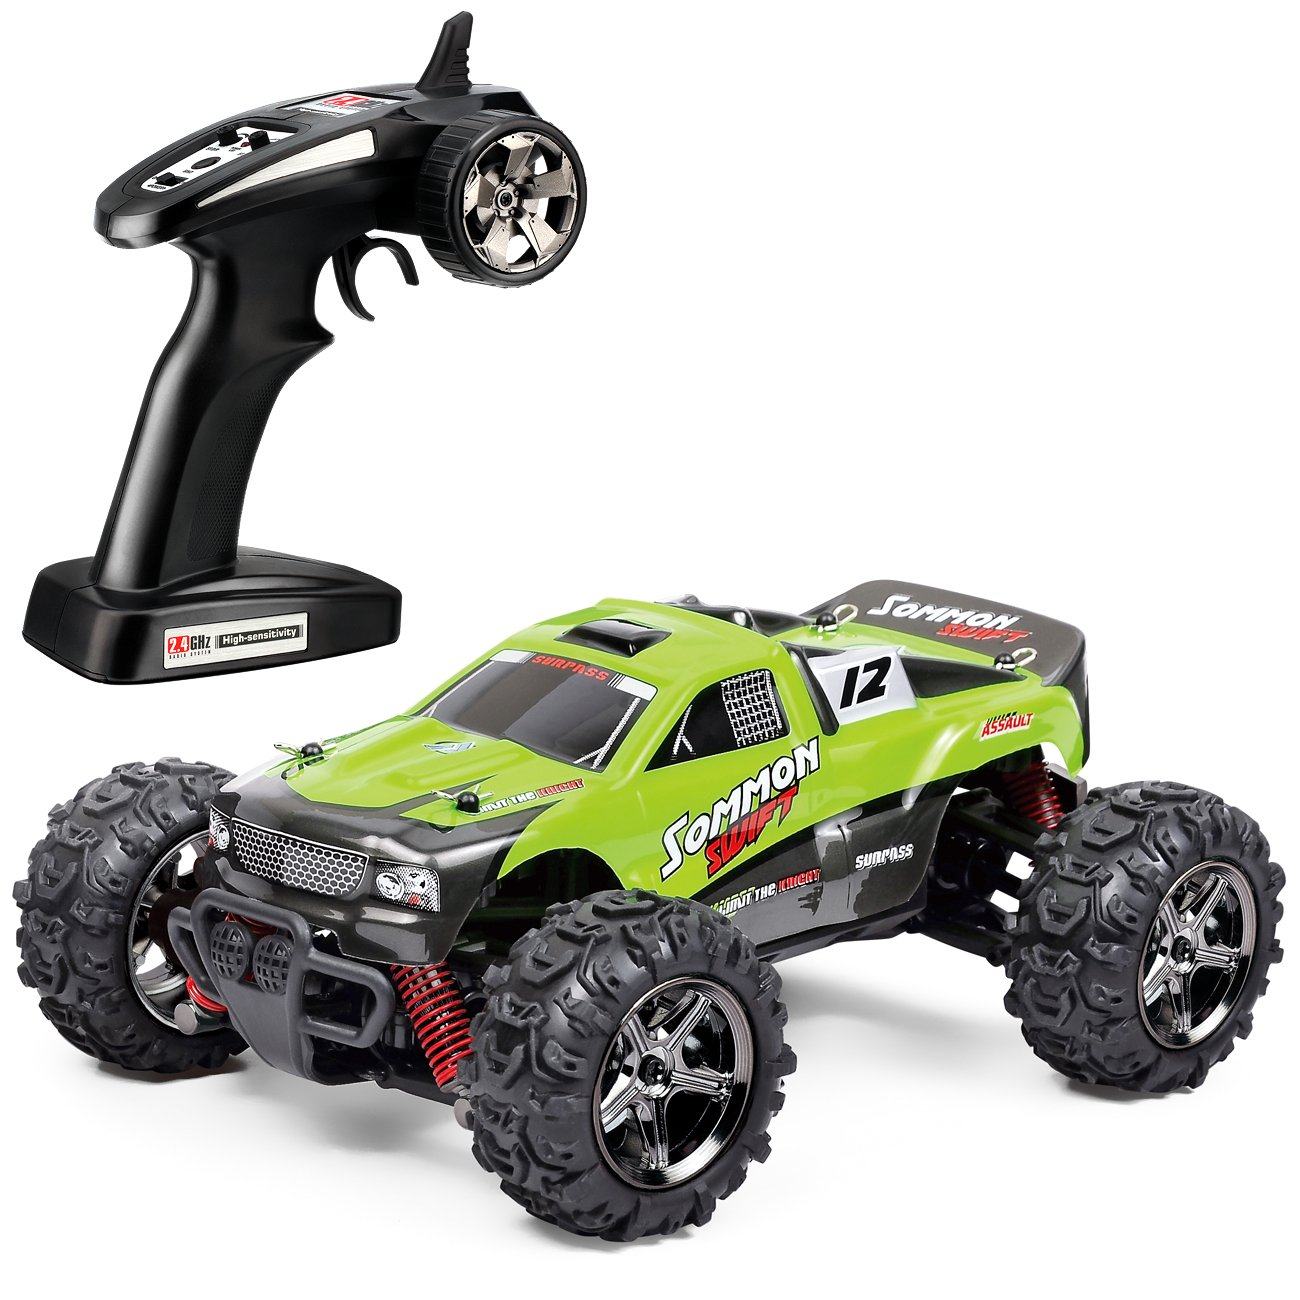 Top 10 Best RC Cars to Buy in 2018 - RCHelicop